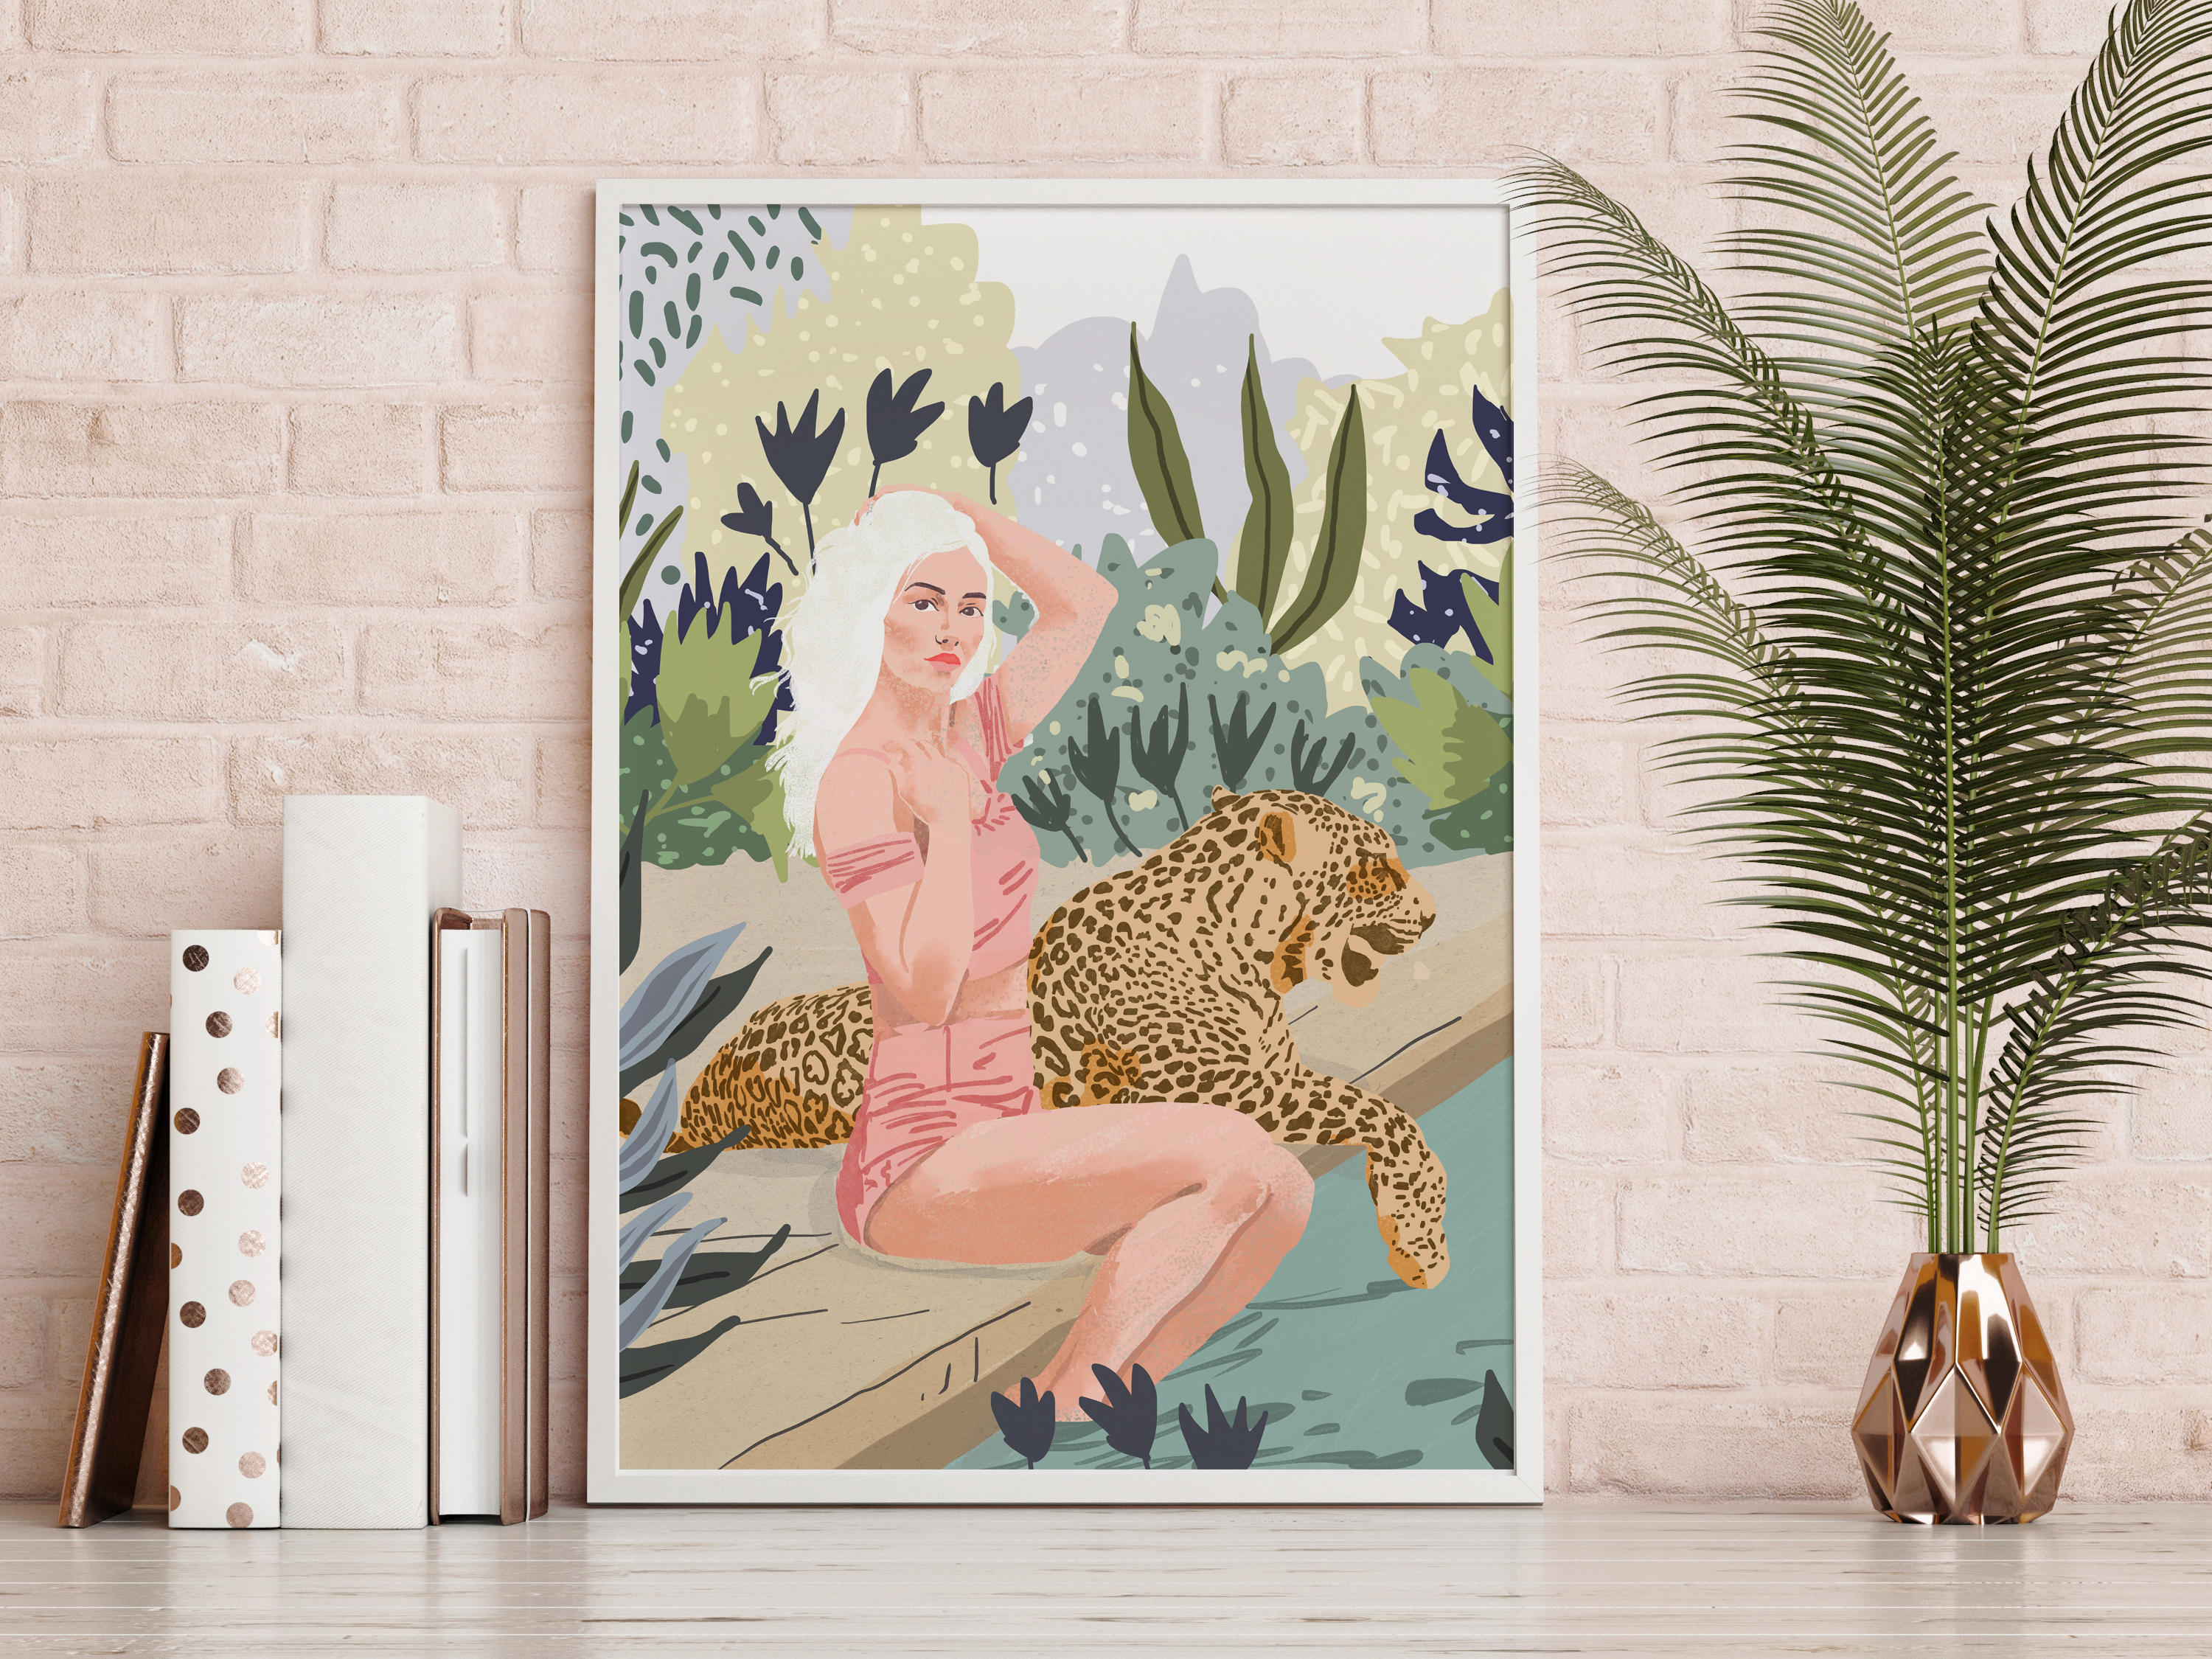 Personalised framed prints: How To Train Your Leopard by designer Uma Prabhakar Gokhale – buy on ArtWOW